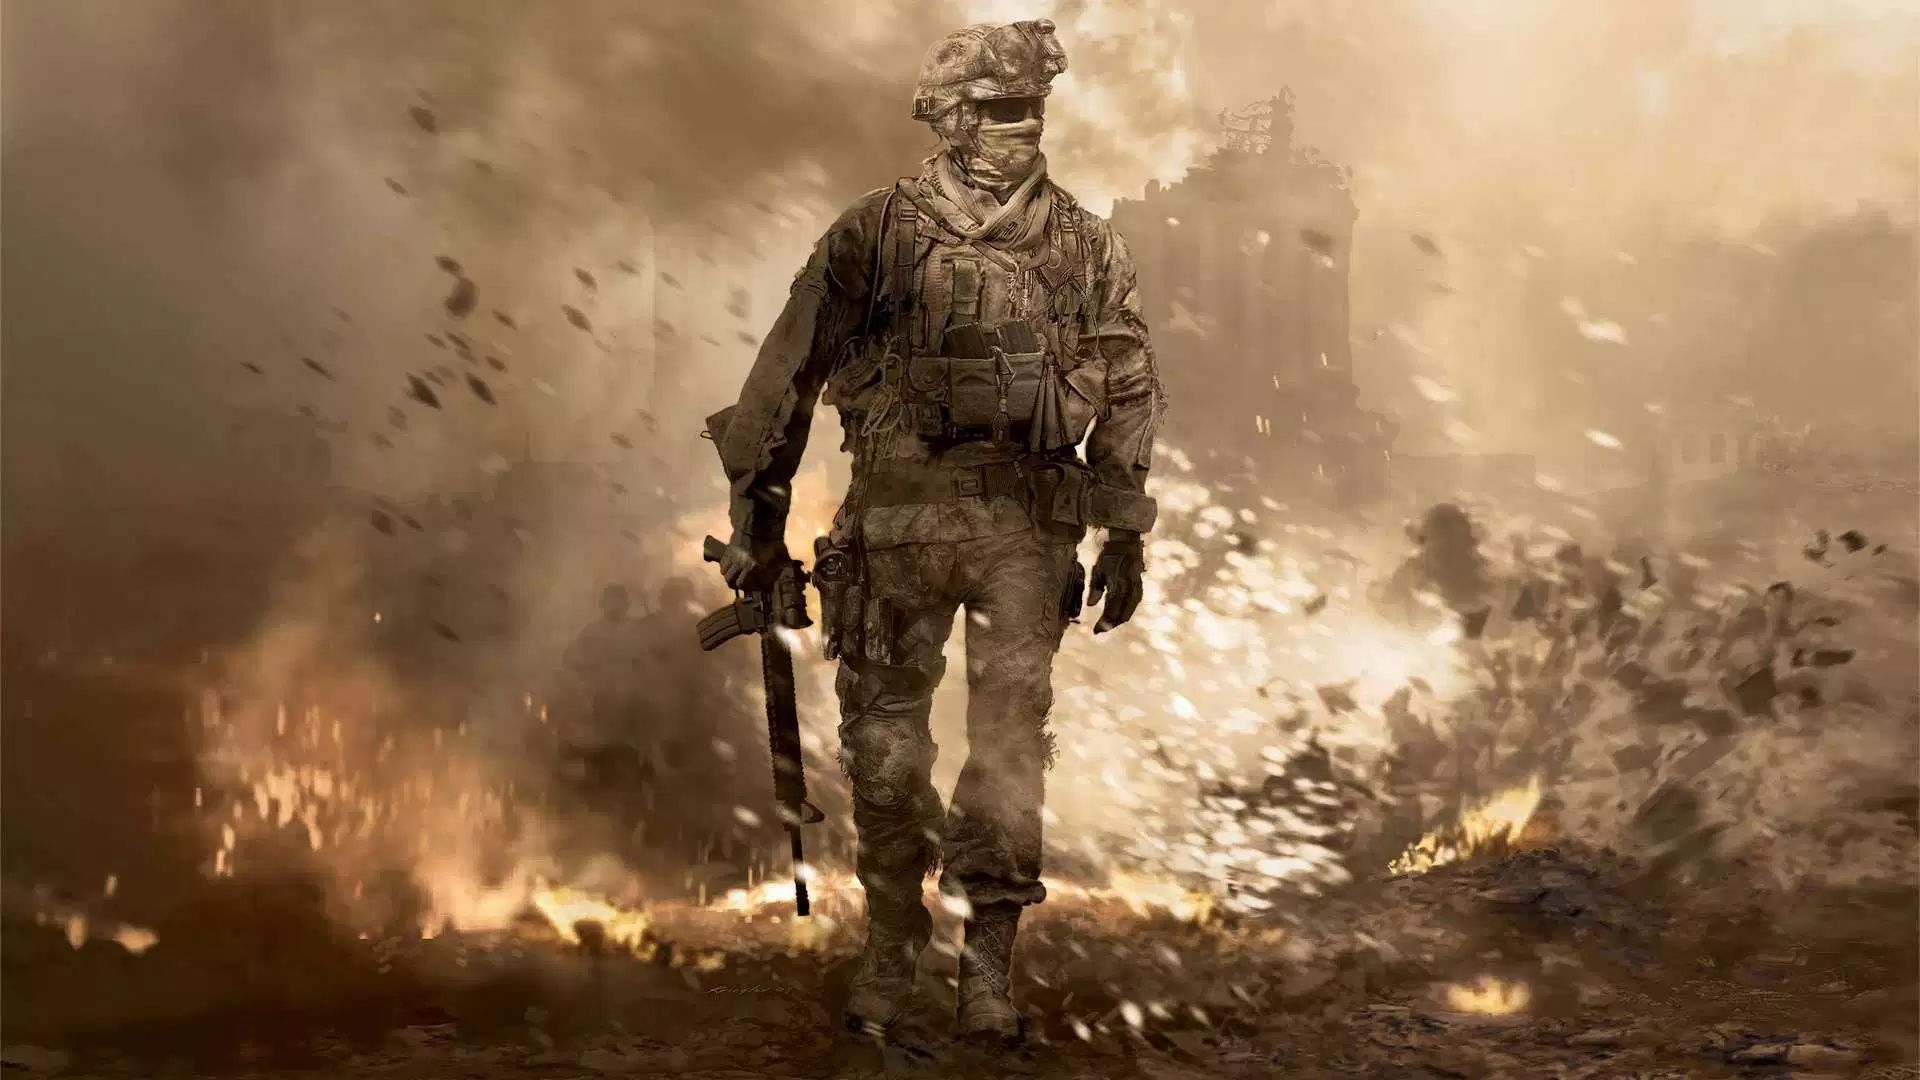 Mogli bi dobiti Call of Duty: Modern Warfare 2 remaster